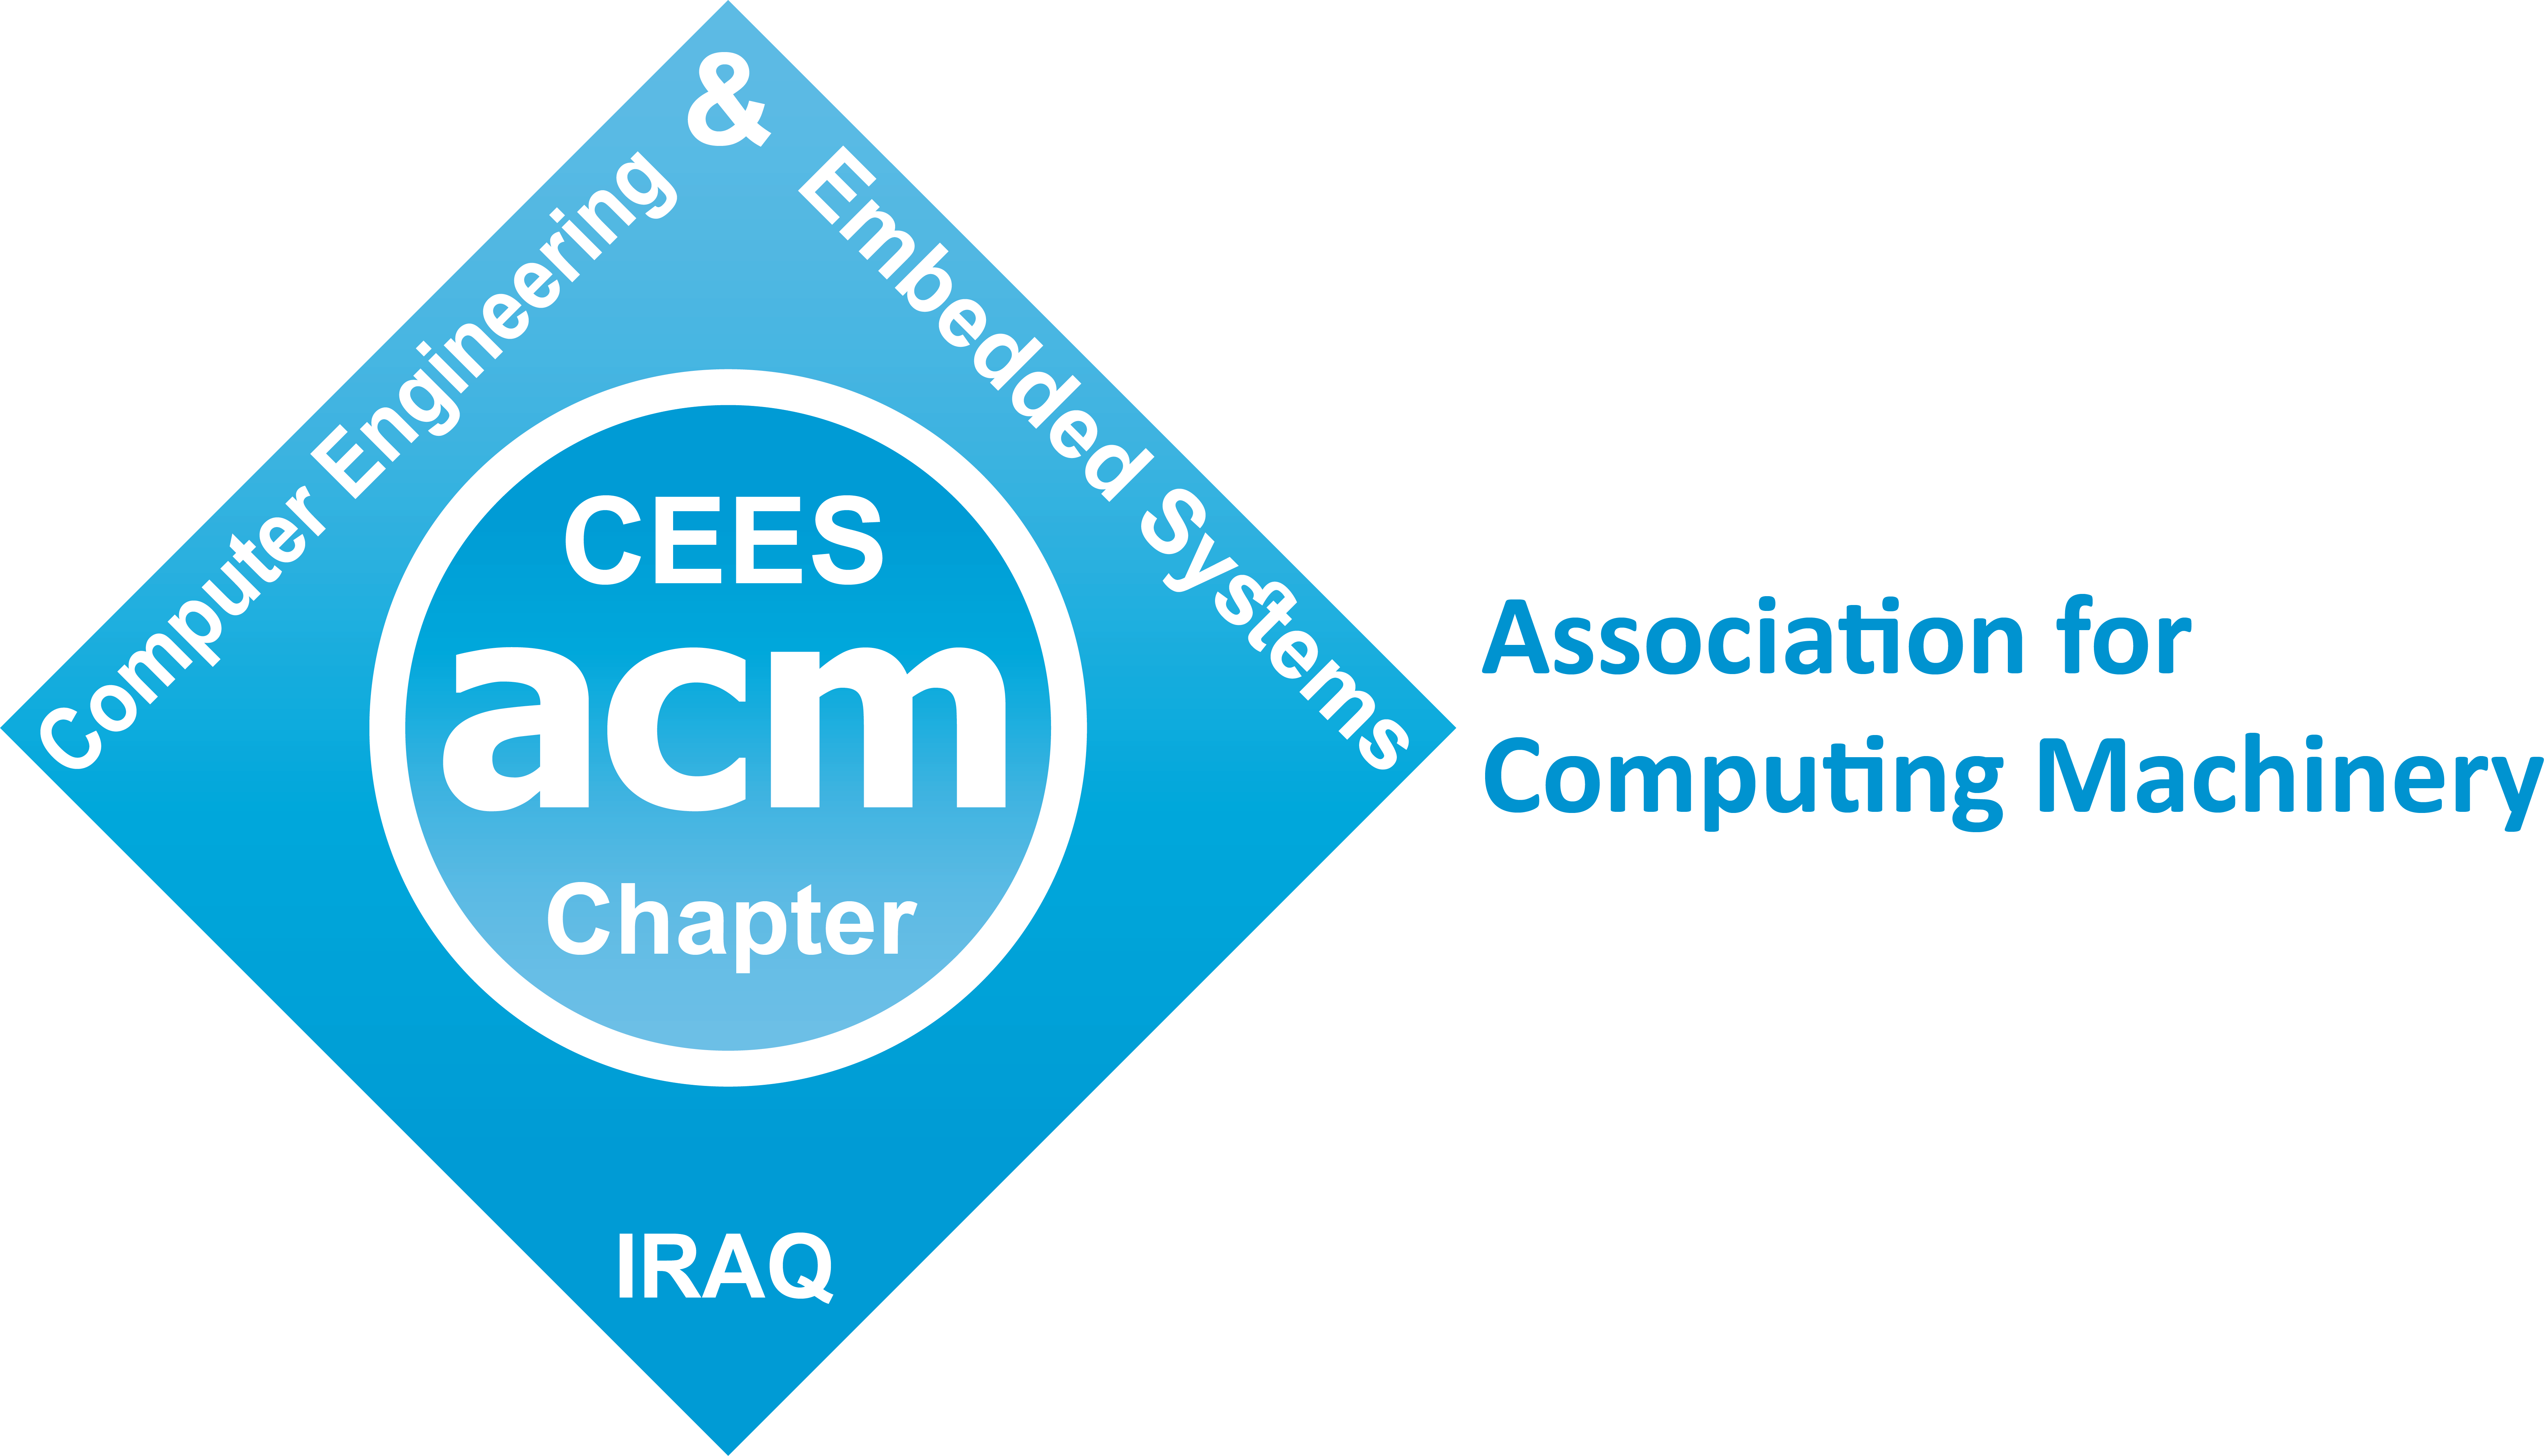 association for computing machinery Join with other computing and scientific organizations in europe to offer new programs and activities encourage nominations of acm european members for the advanced member grades of senior.